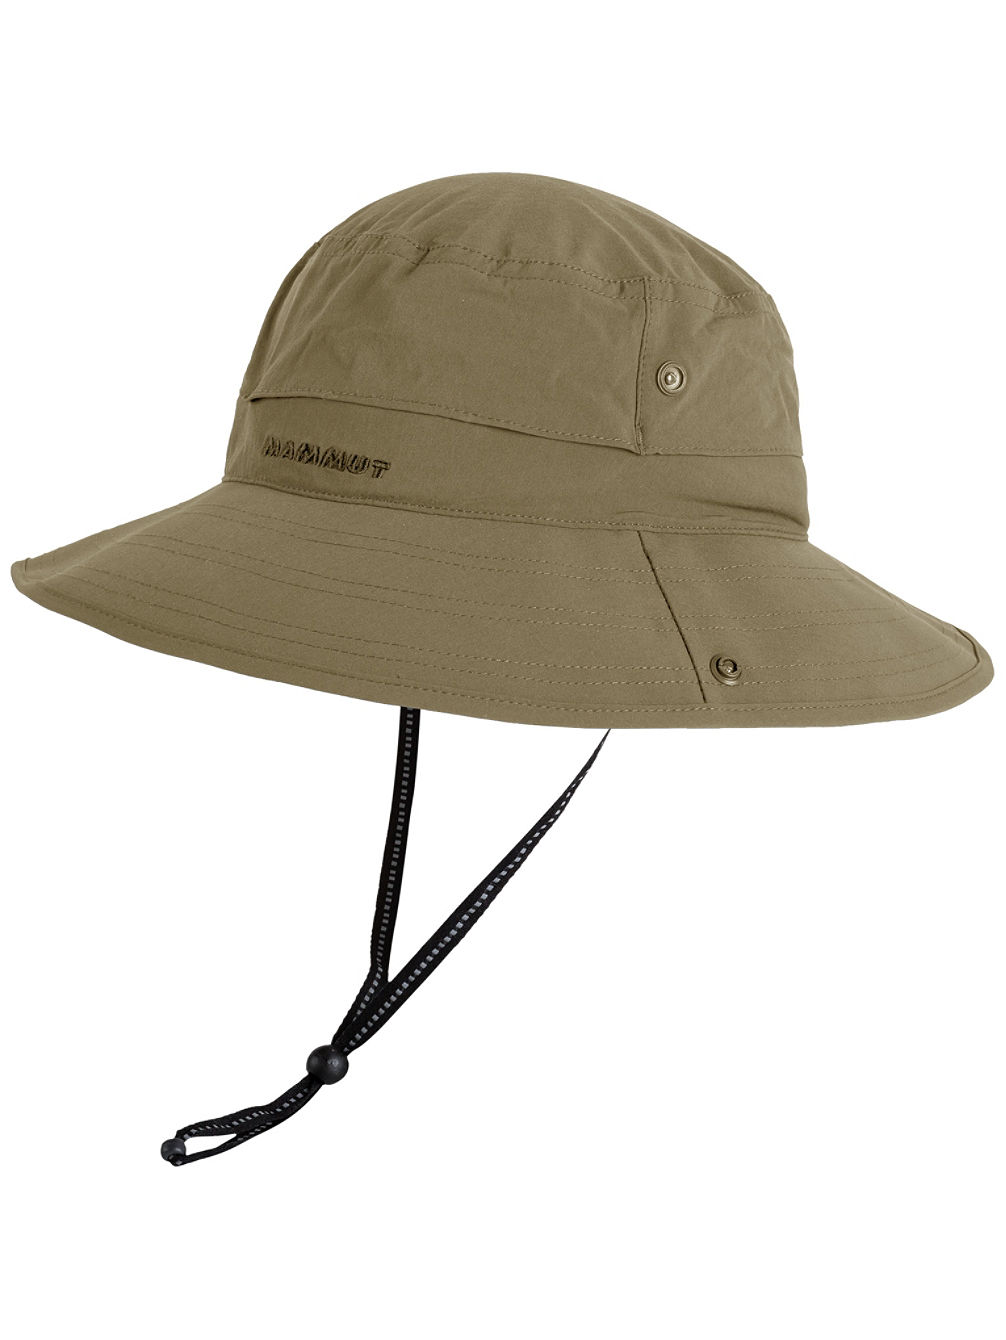 Runbold Advanced Sombrero